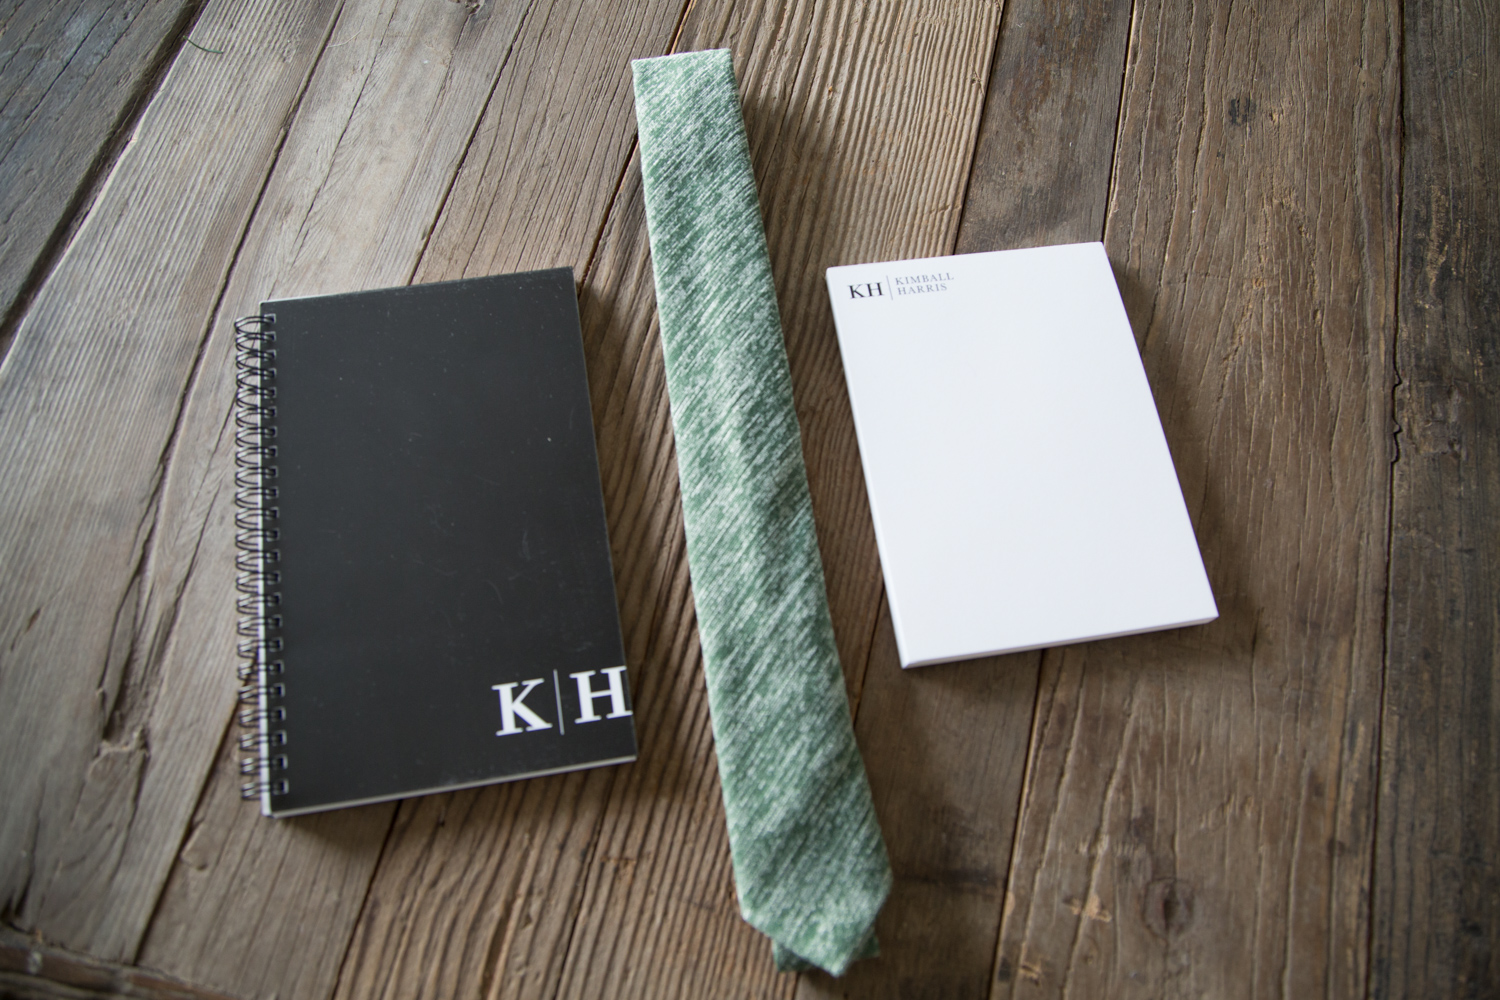 Personalized Stationary Set for Men from Tiny Prints